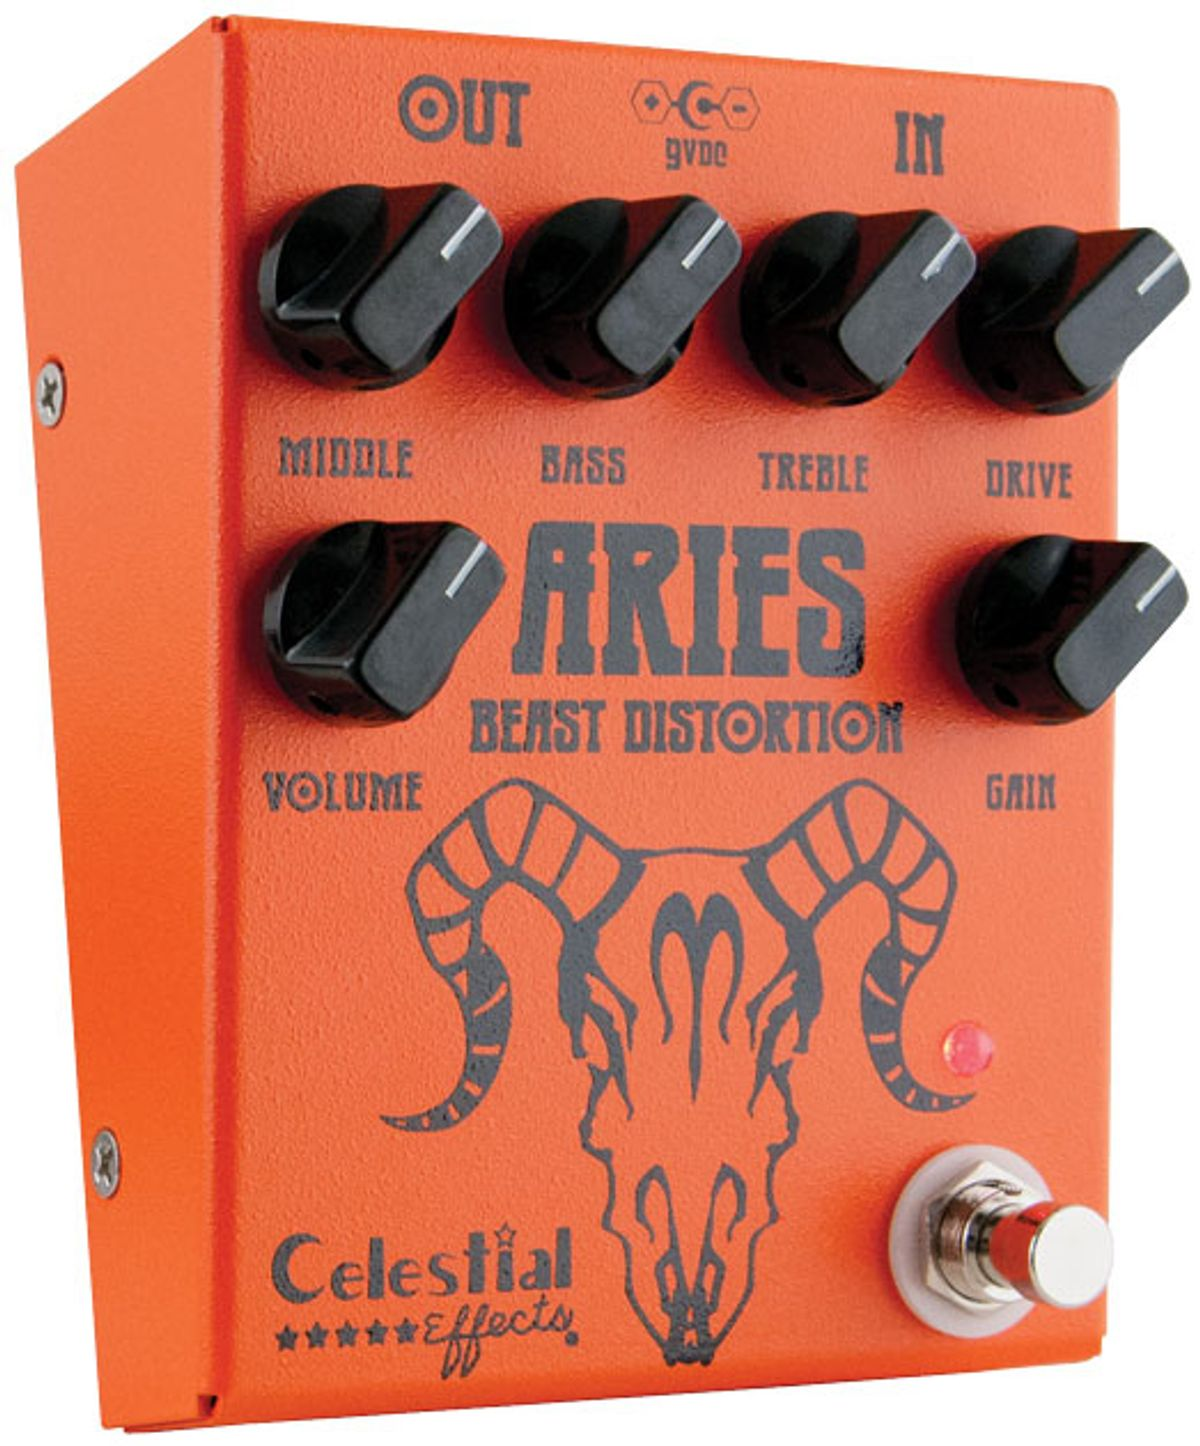 Celestial Effects Aries Beast Distortion Review